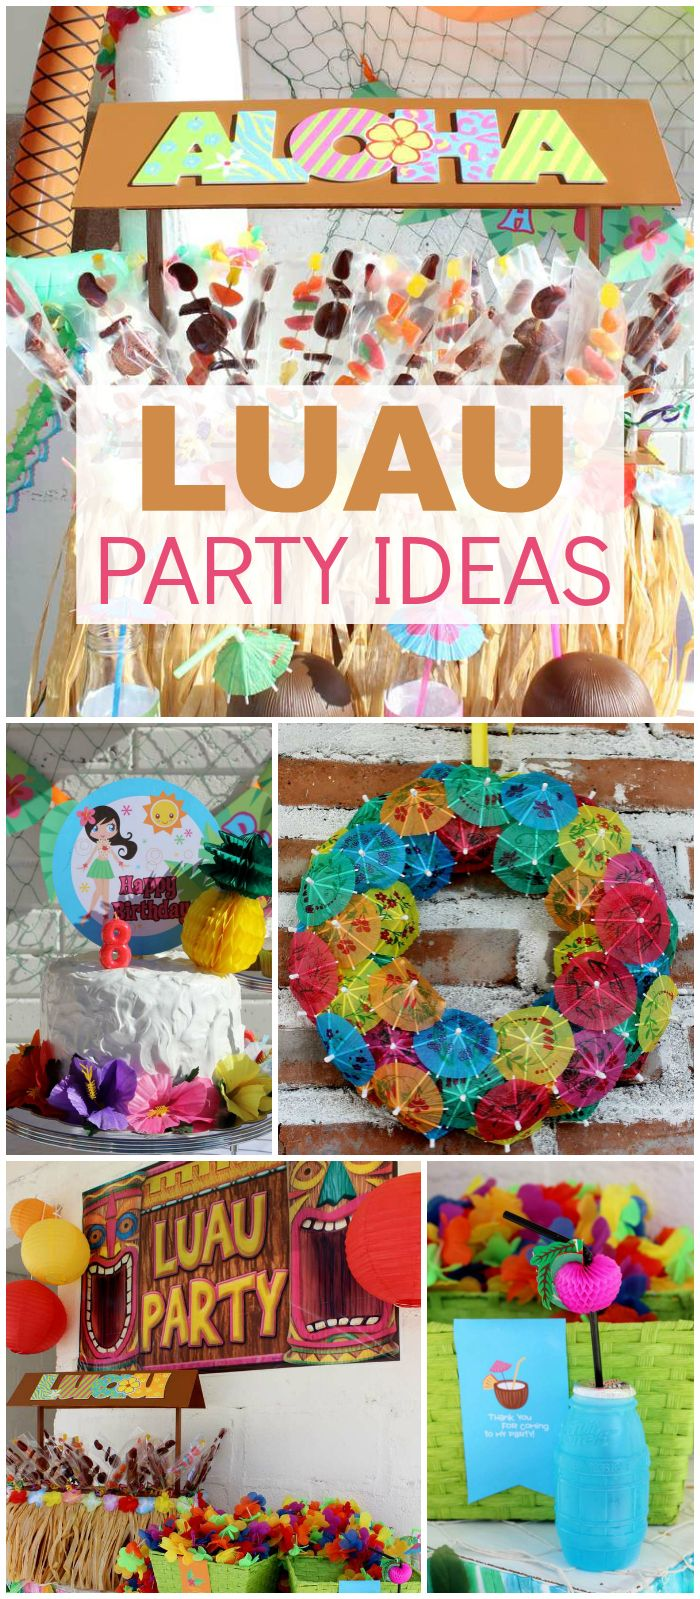 Here's a gorgeous luau party perfect for summertime! See more party ideas at